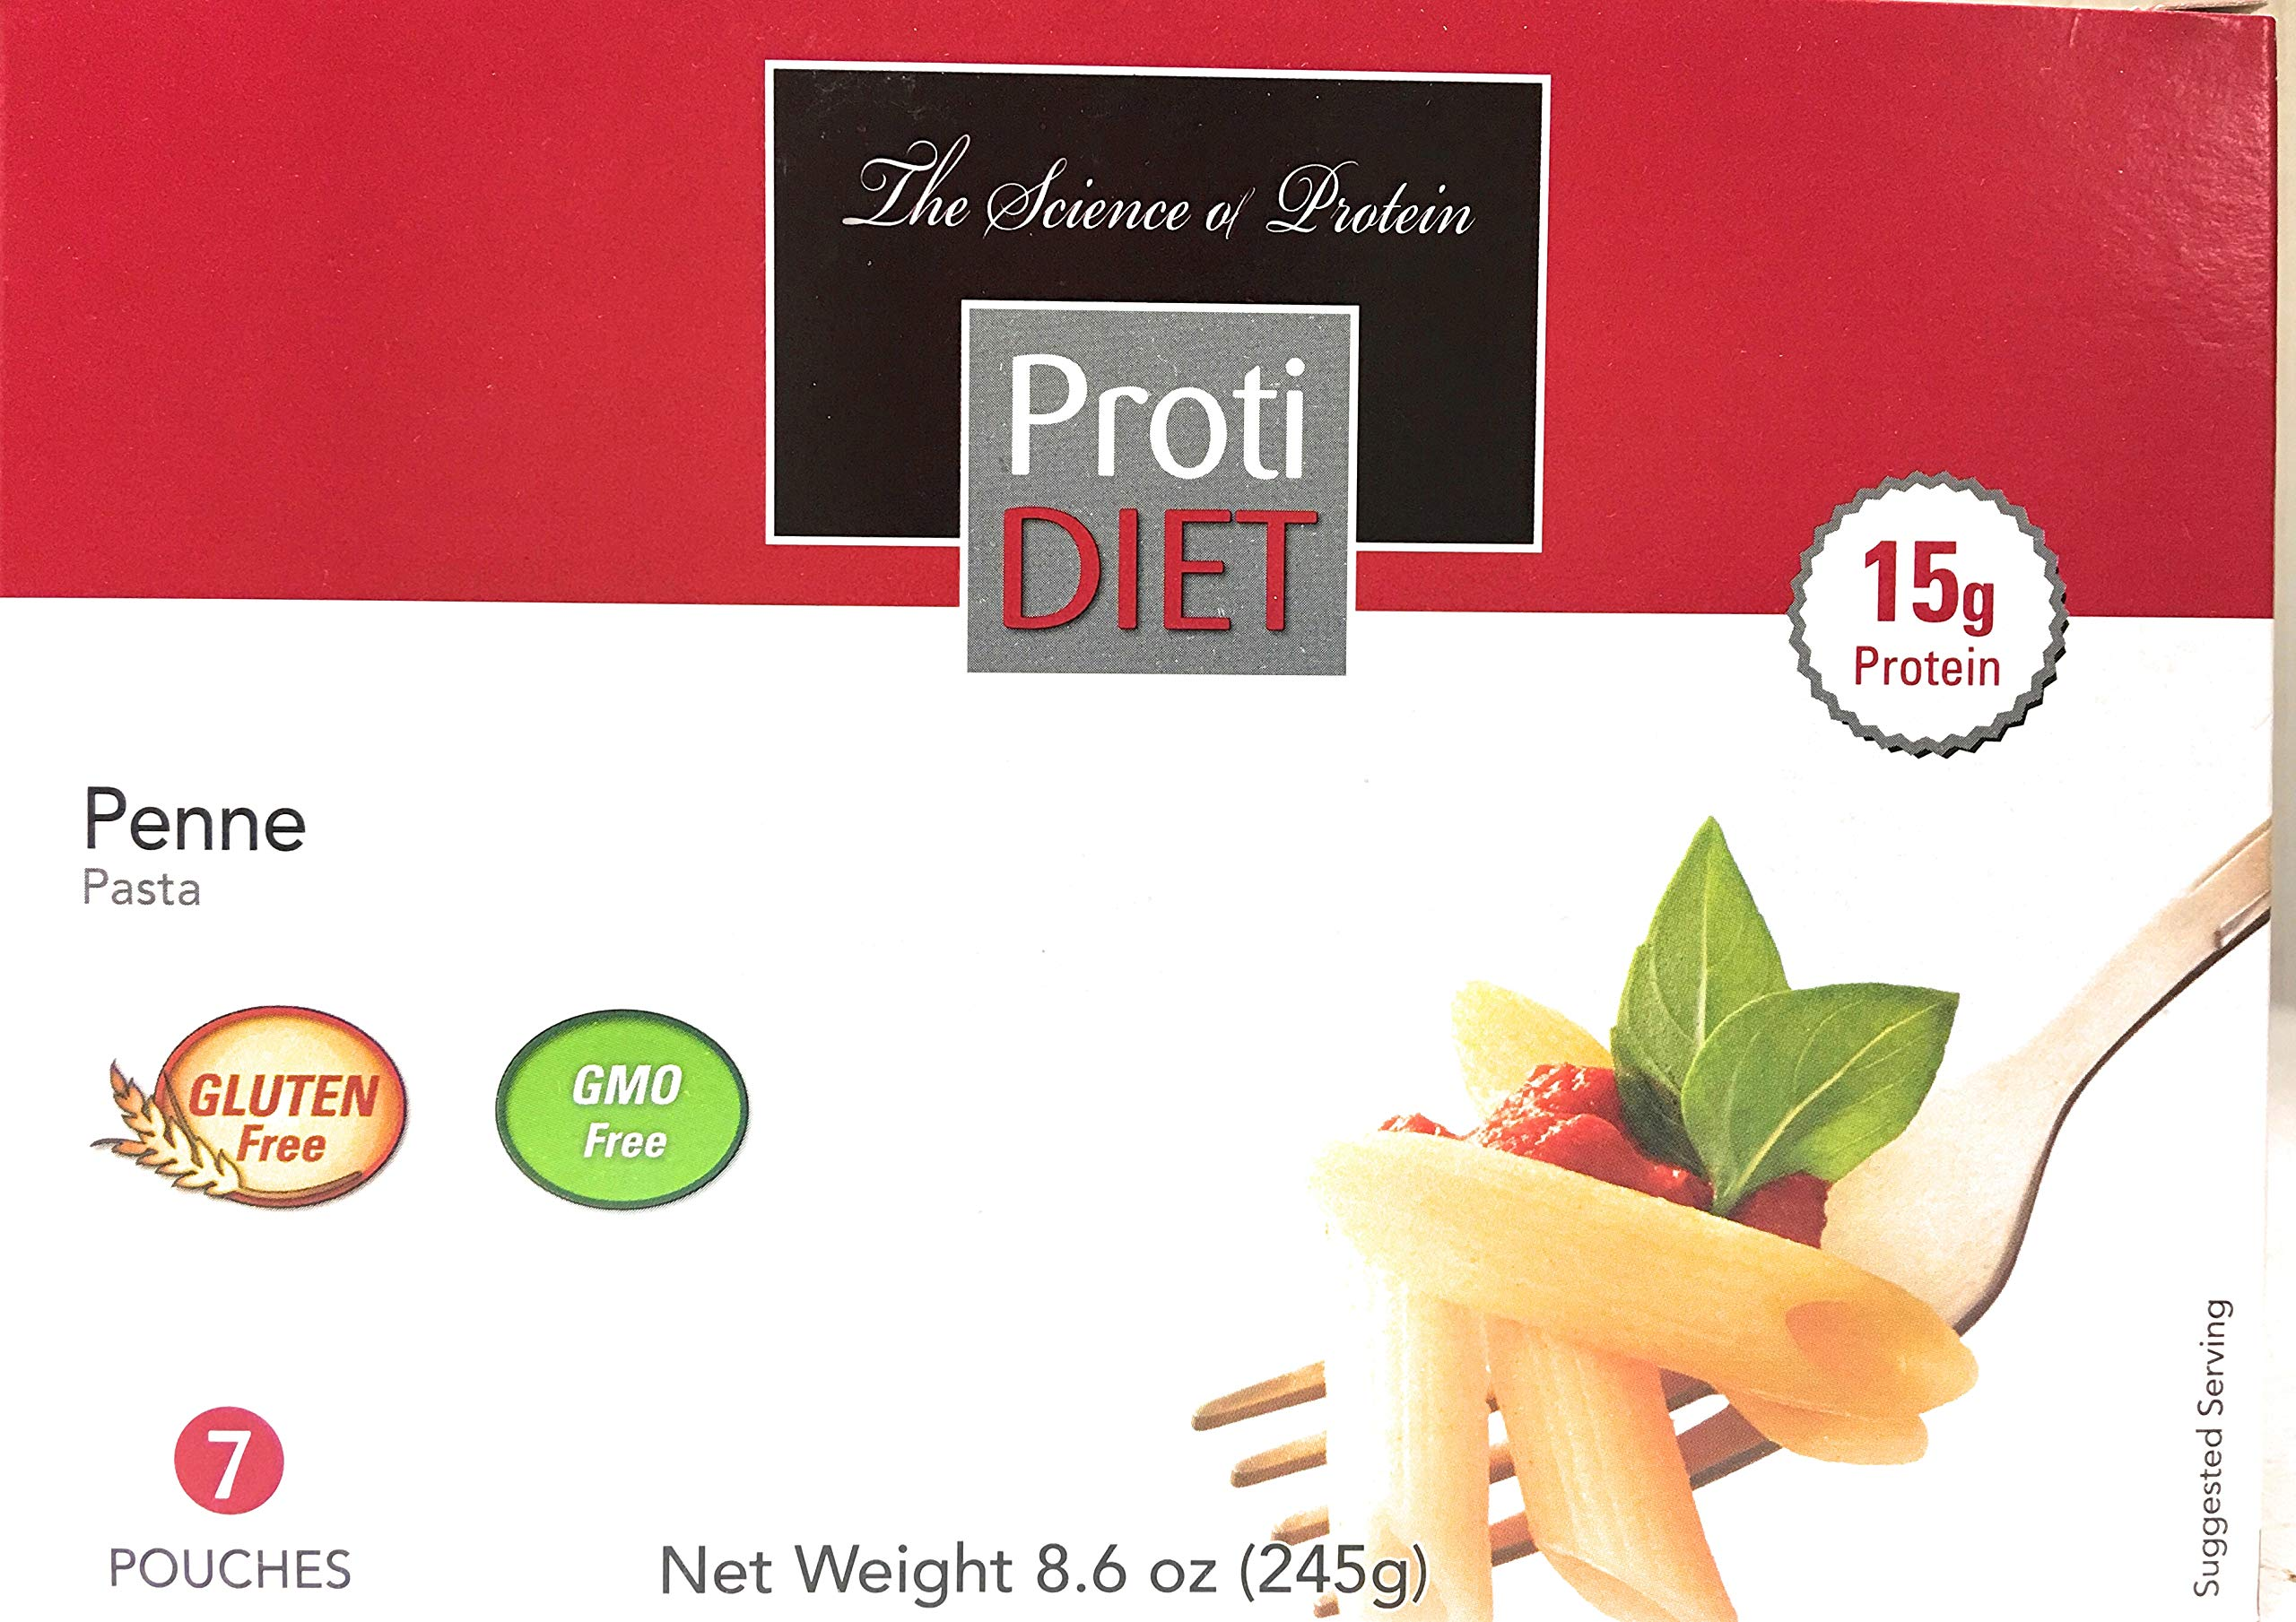 Proti Diet High Protein/Low CARB PENNE Pasta by Being Well Essentials - 7 servings - 15g protien - only 110 calories